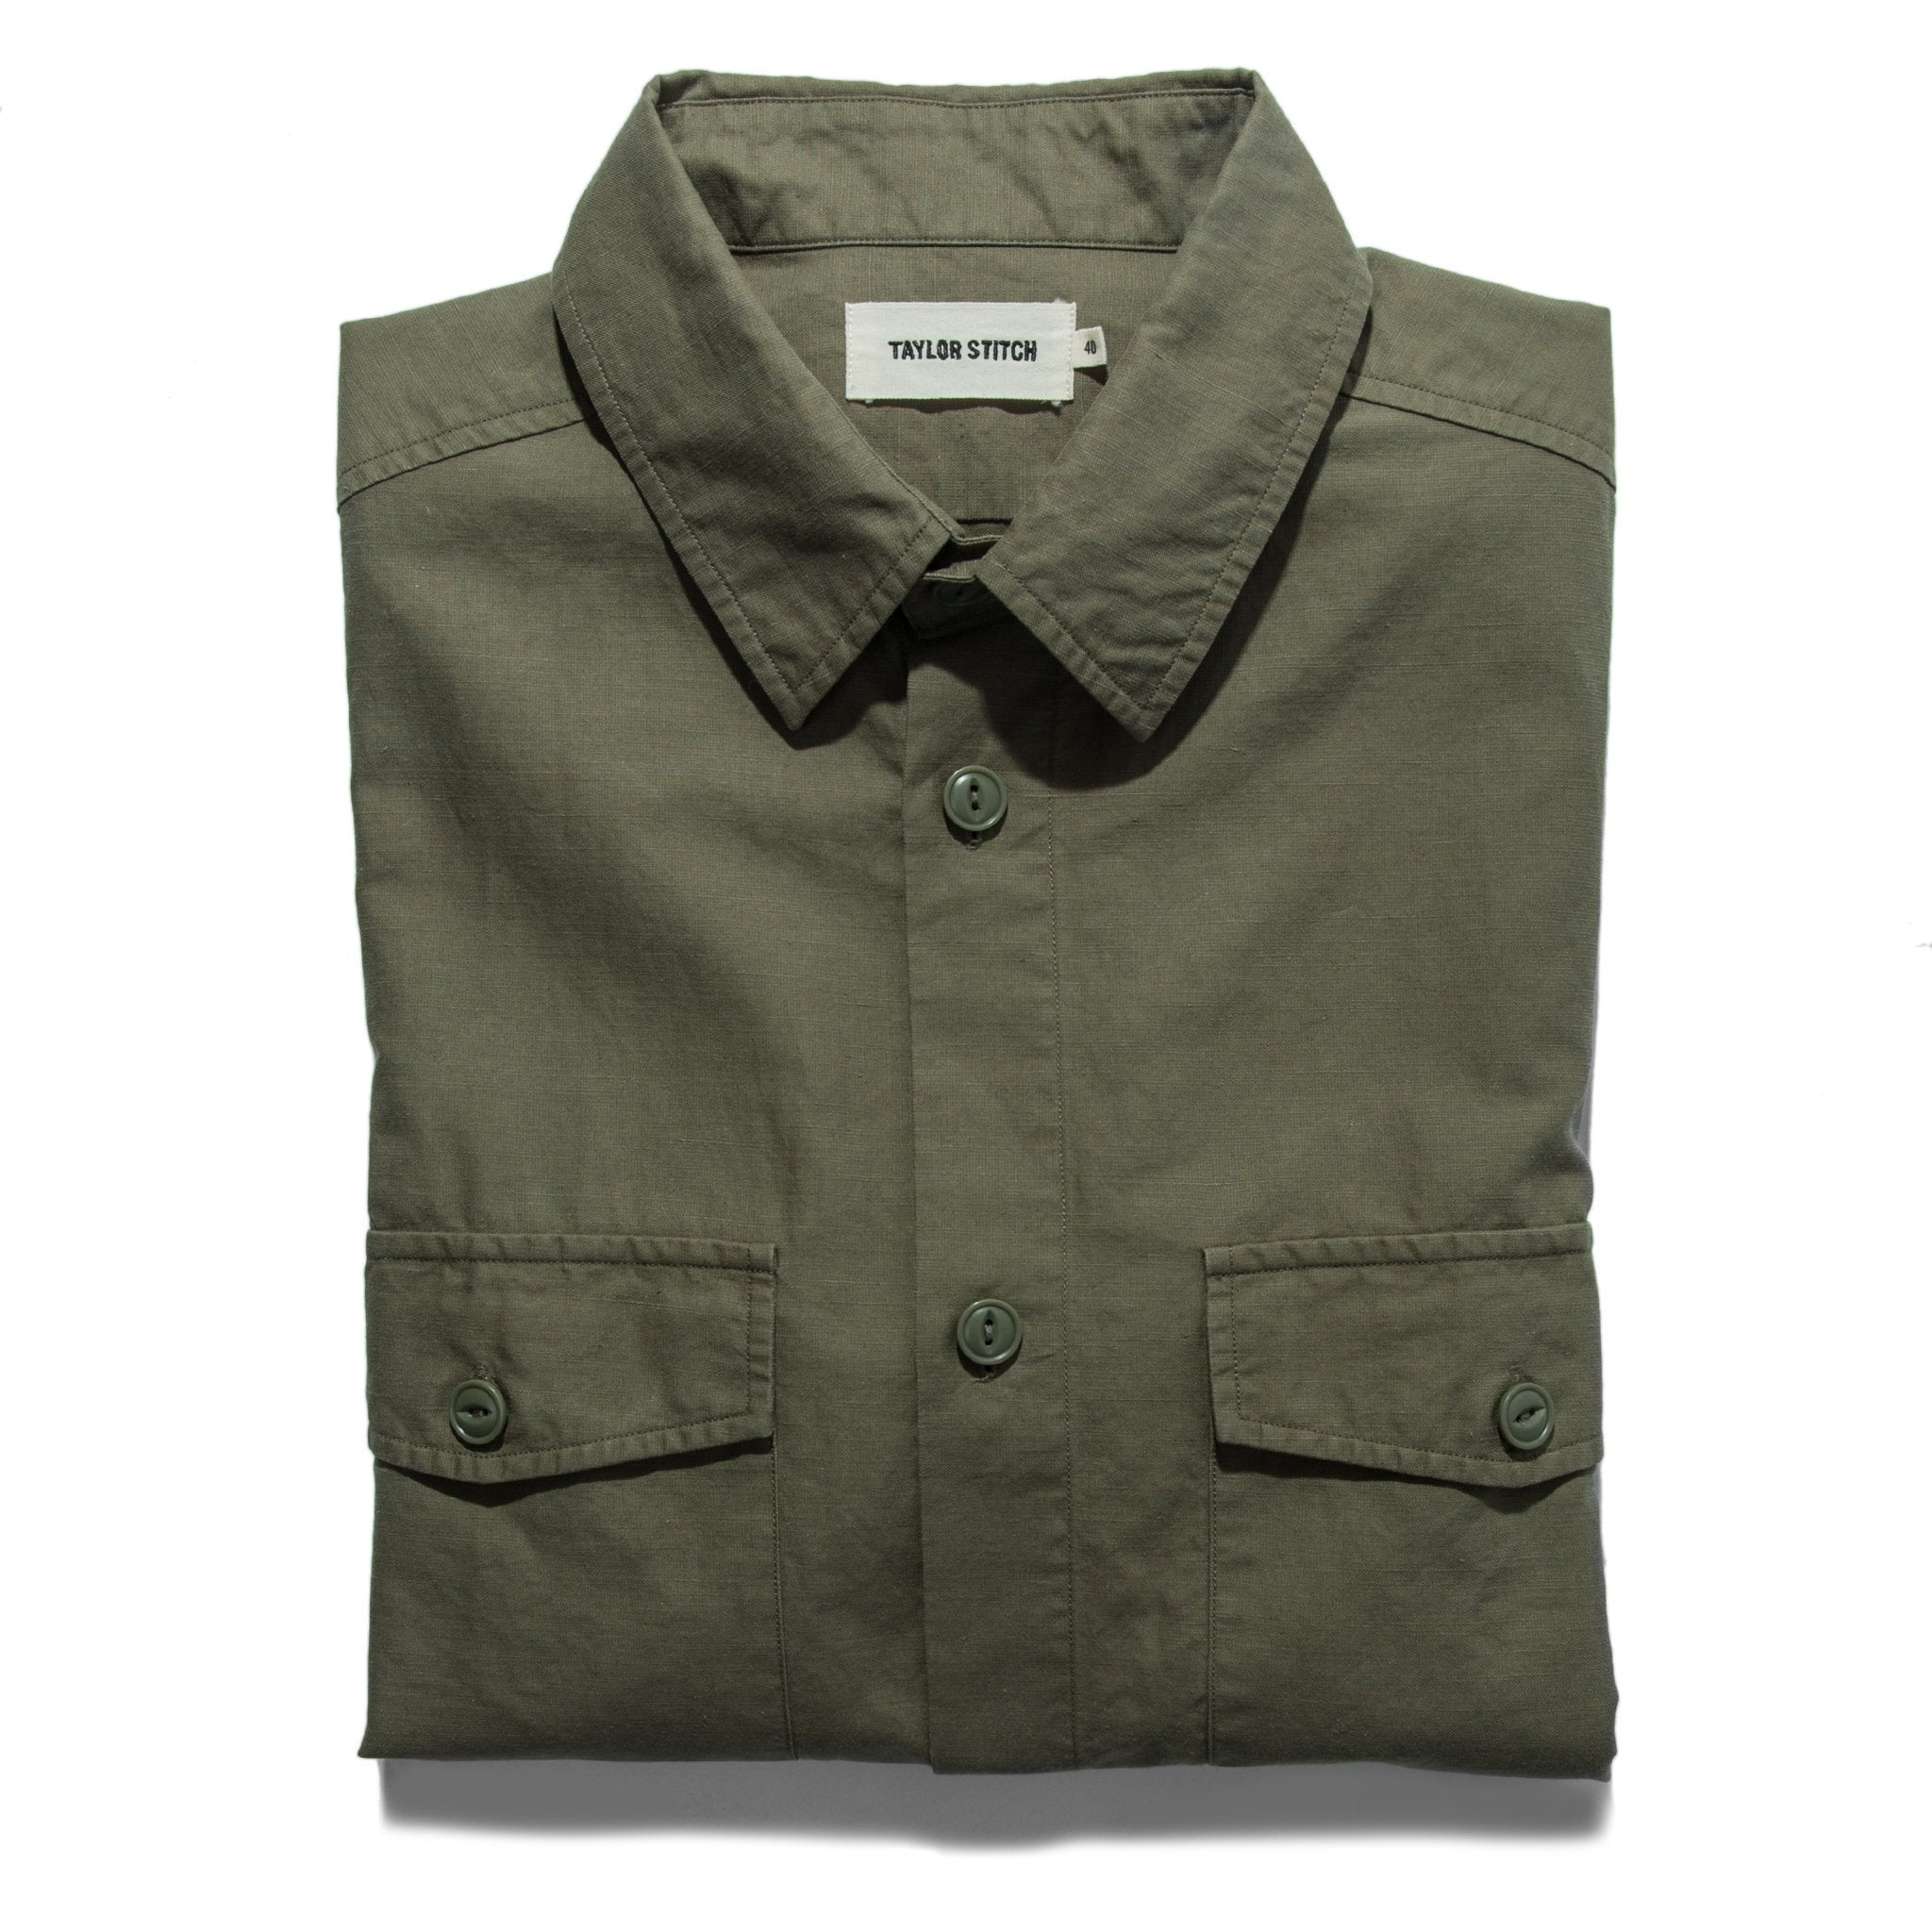 Taylor Stitch - The Point Shirt in Army Hemp